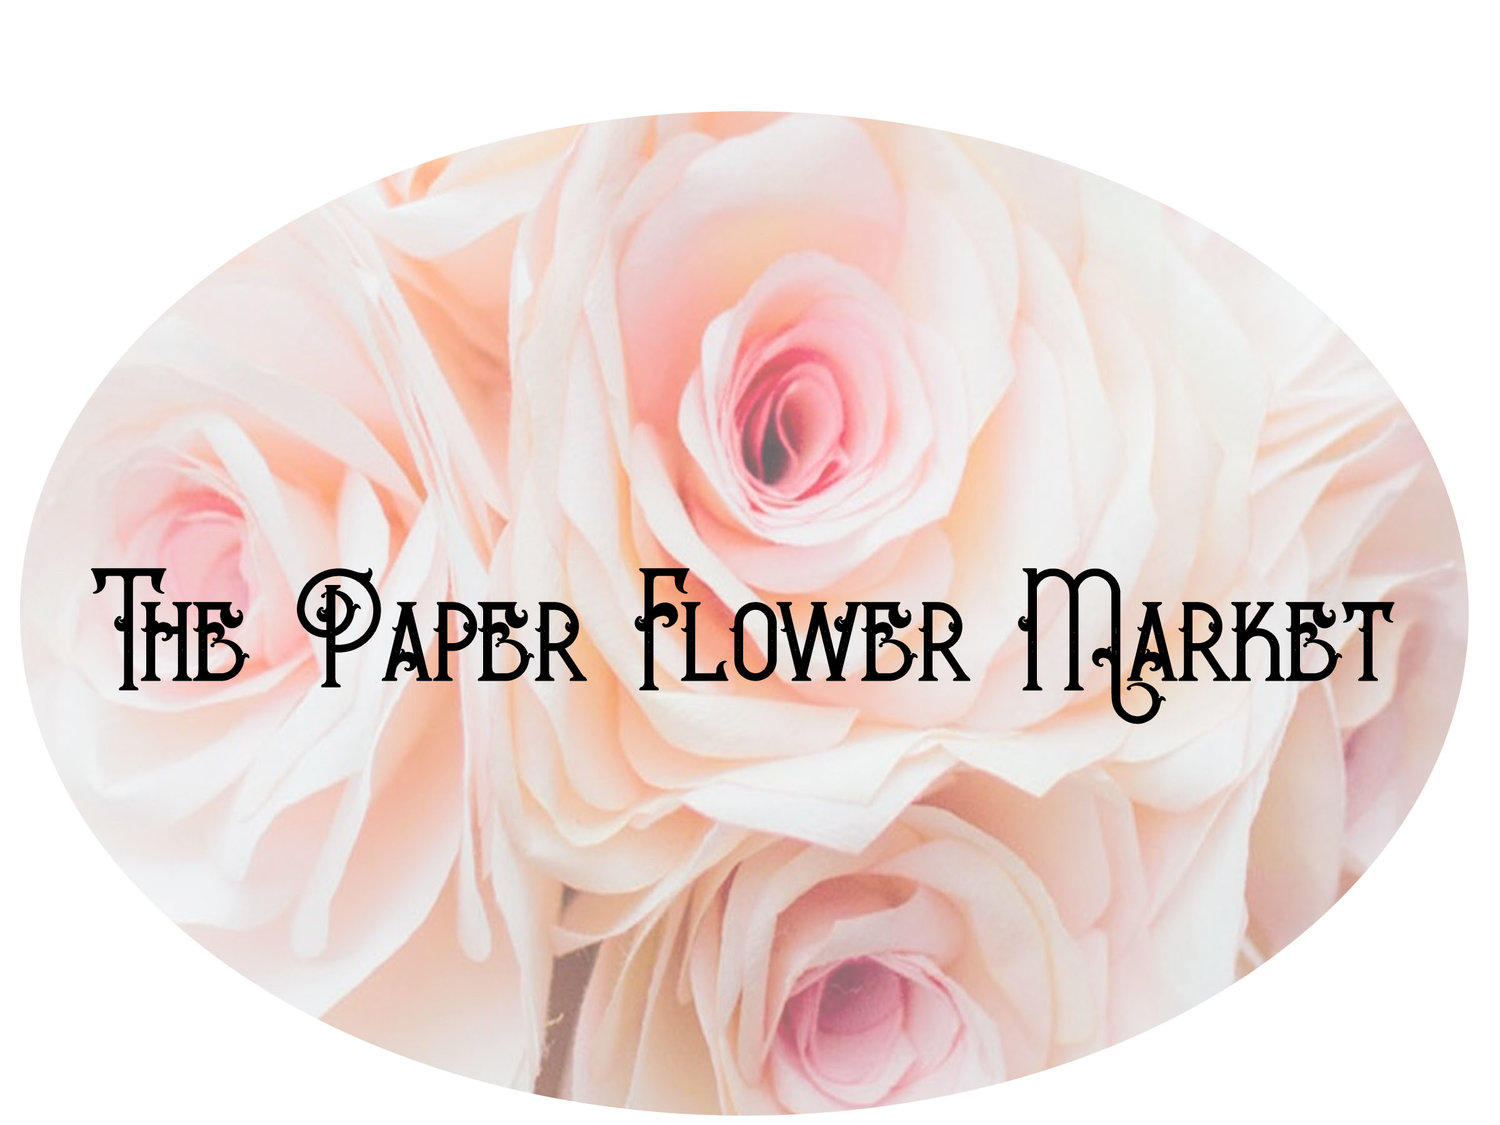 The Paper Flower Market